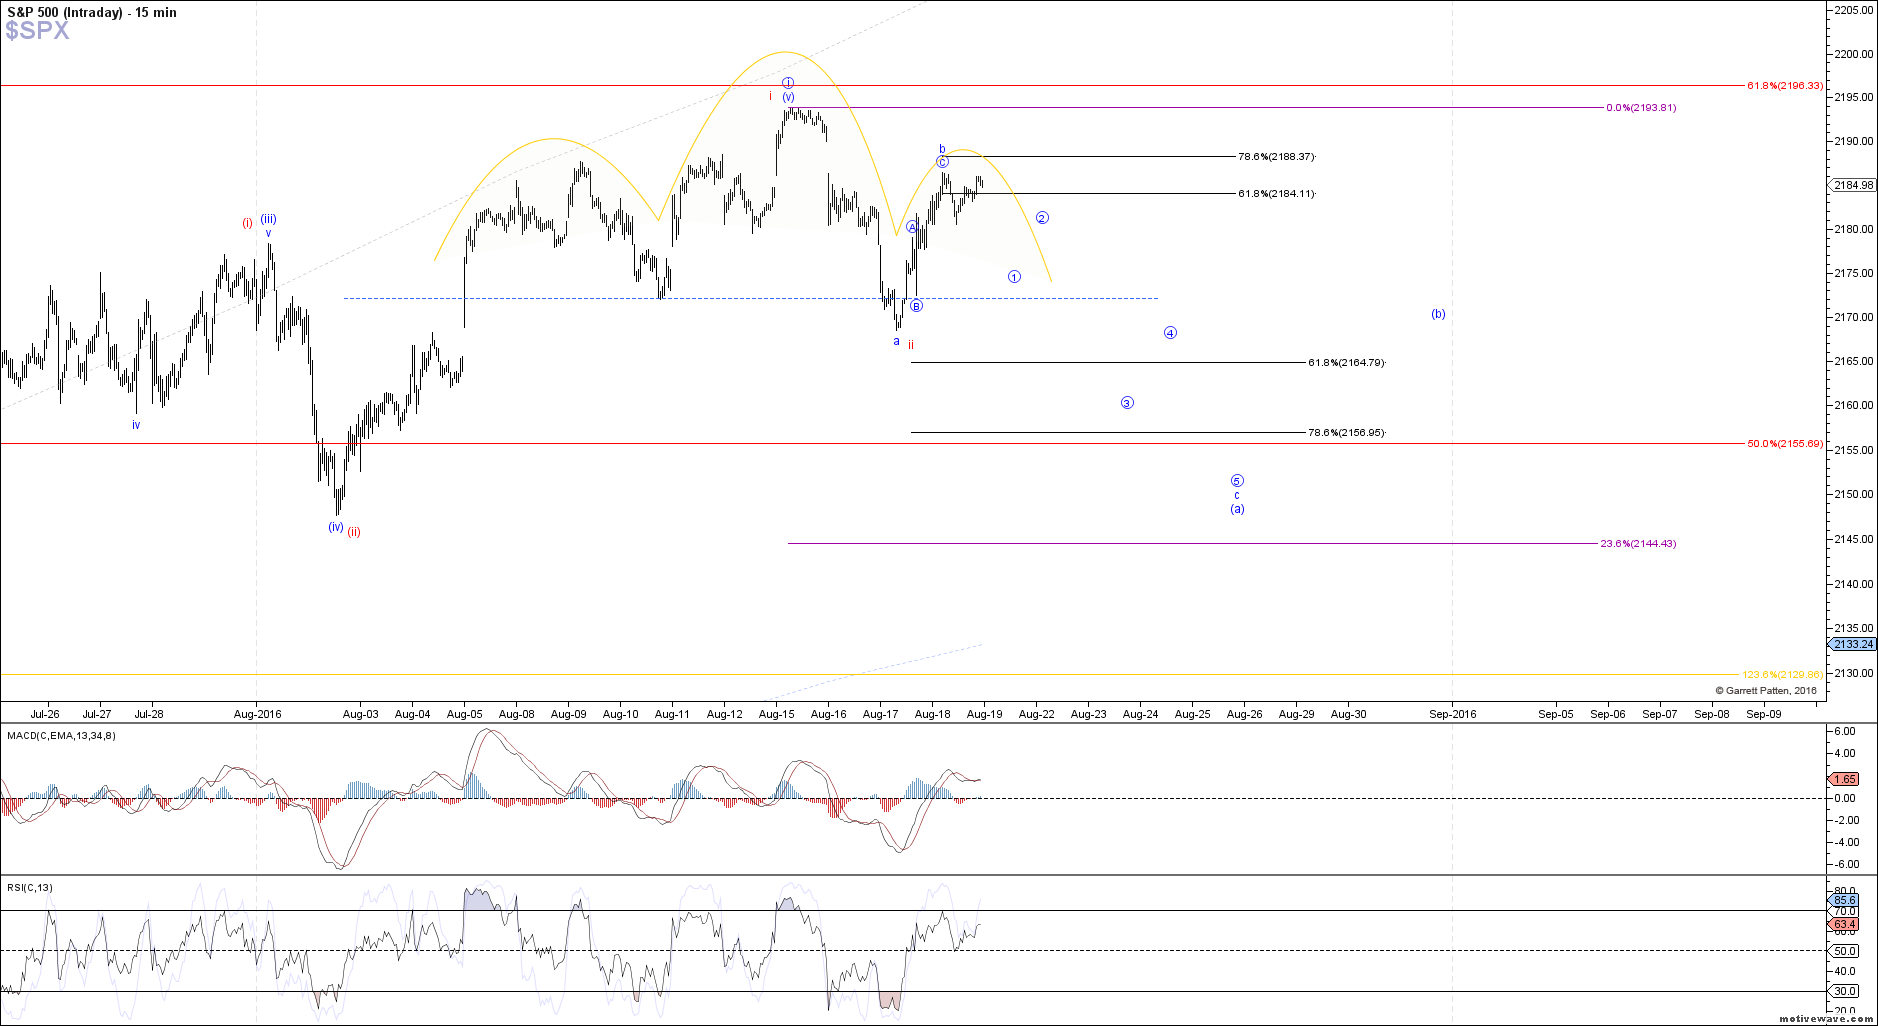 $SPX - Intraday - Aug-18 1351 PM (15 min)